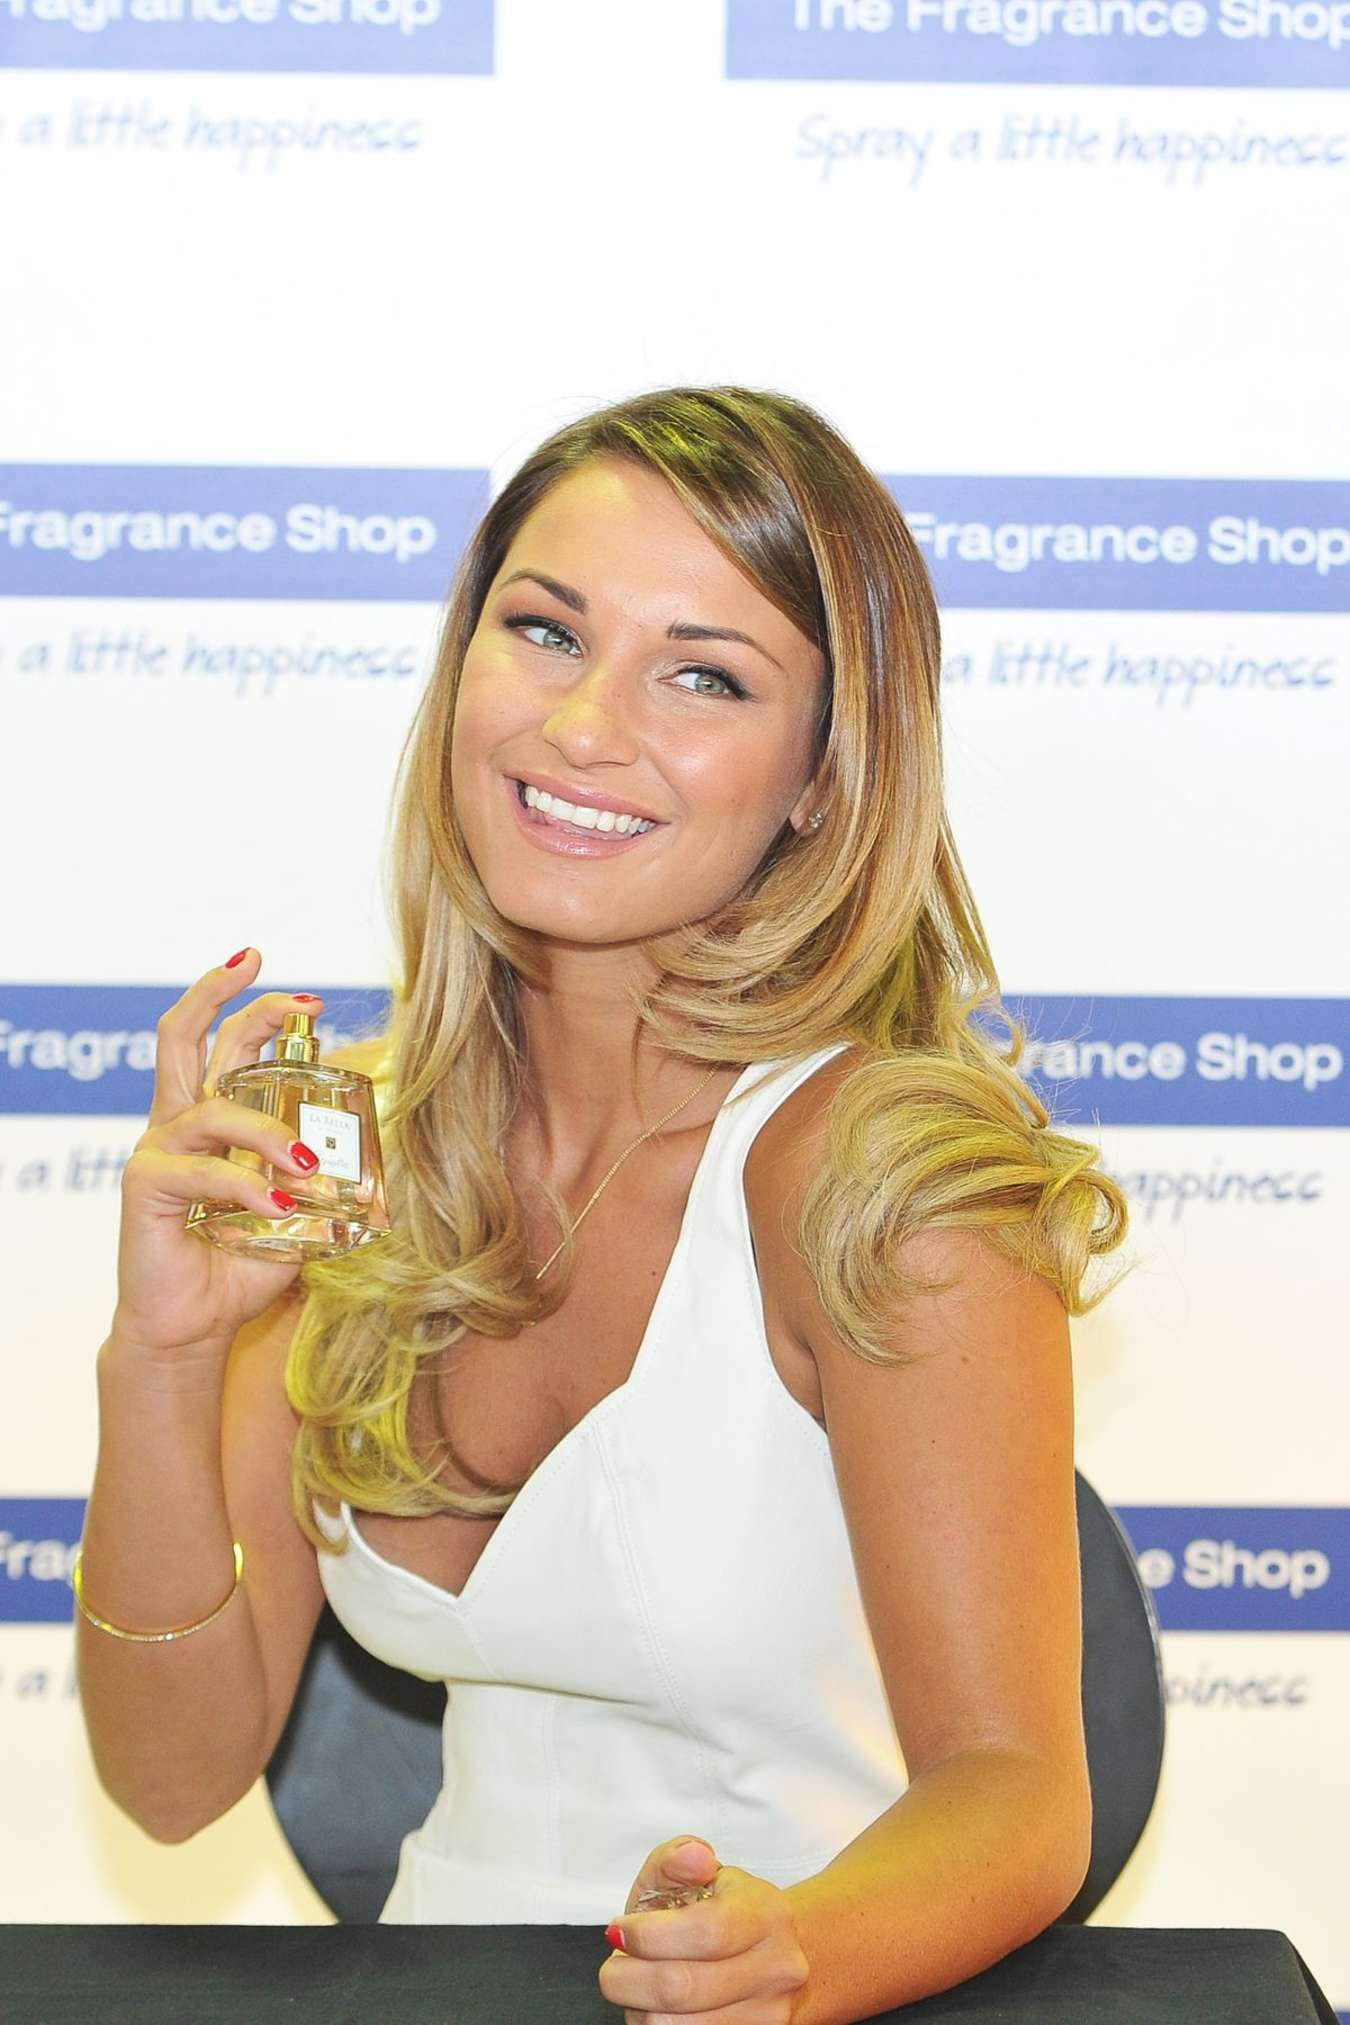 Sam Faiers Promotes Her La Bella Fragrance in Kent